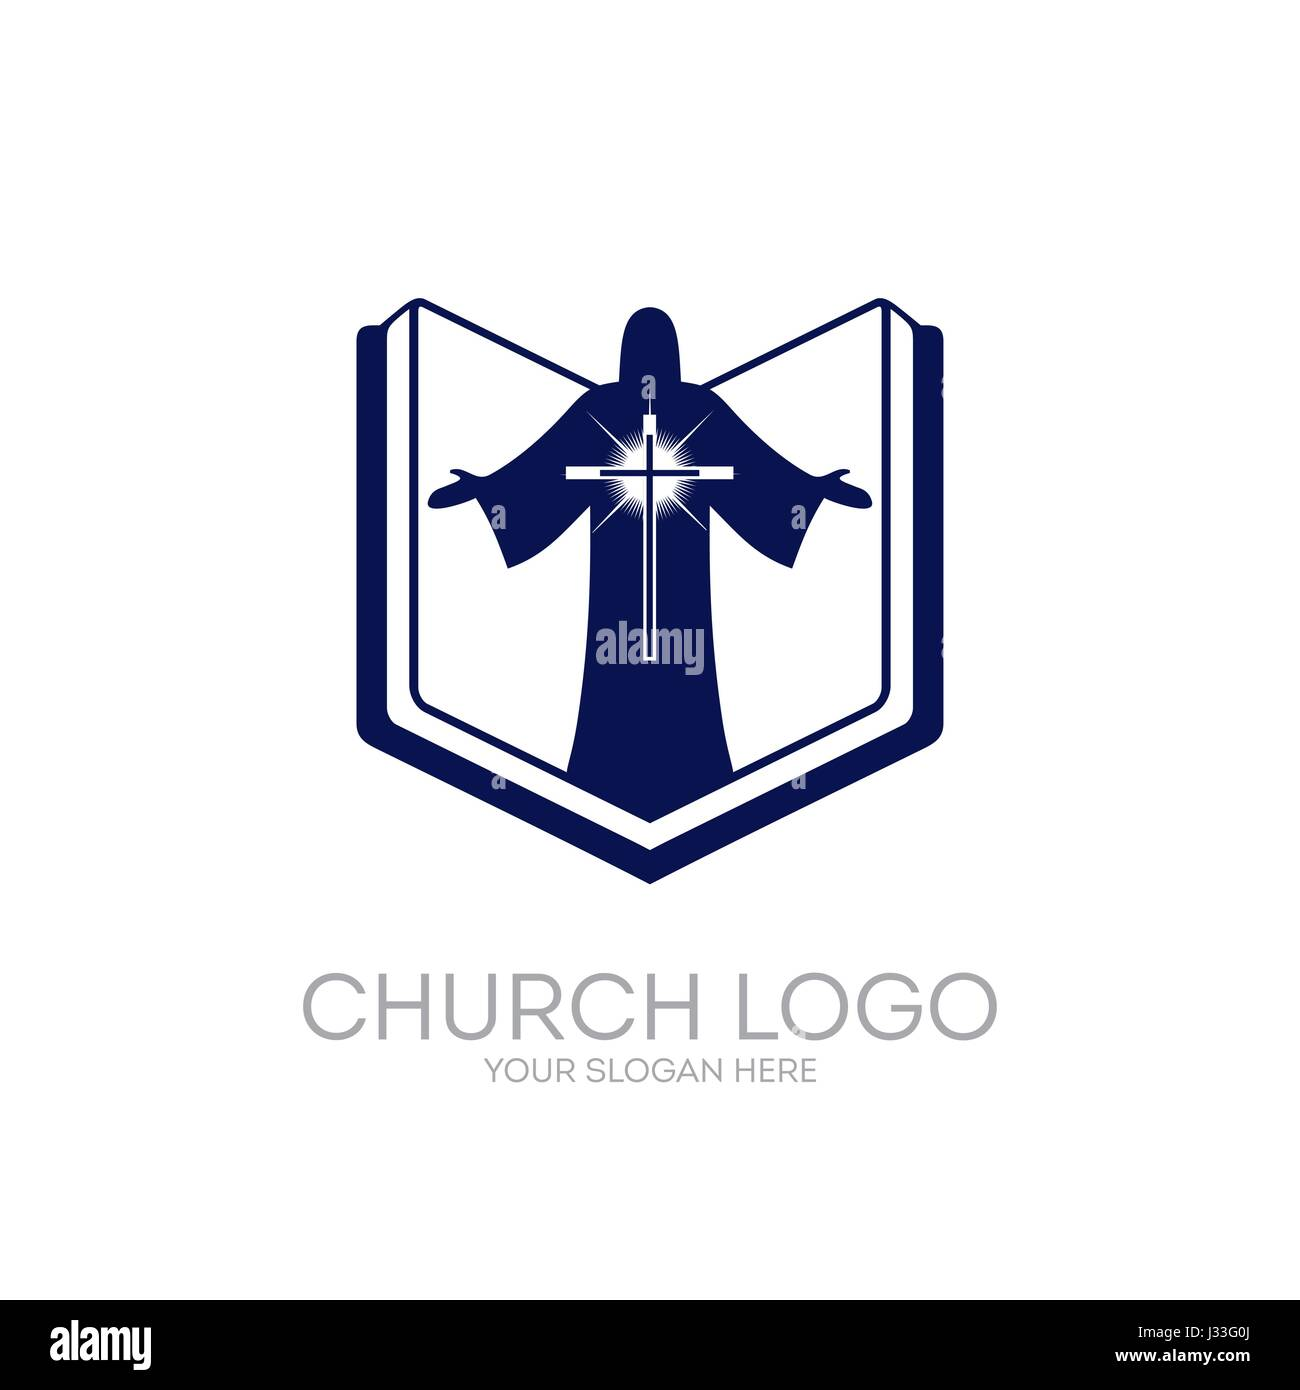 Church logo christian symbols the bible the scriptures jesus christian symbols the bible the scriptures jesus christ and the savior glowing cross biocorpaavc Image collections